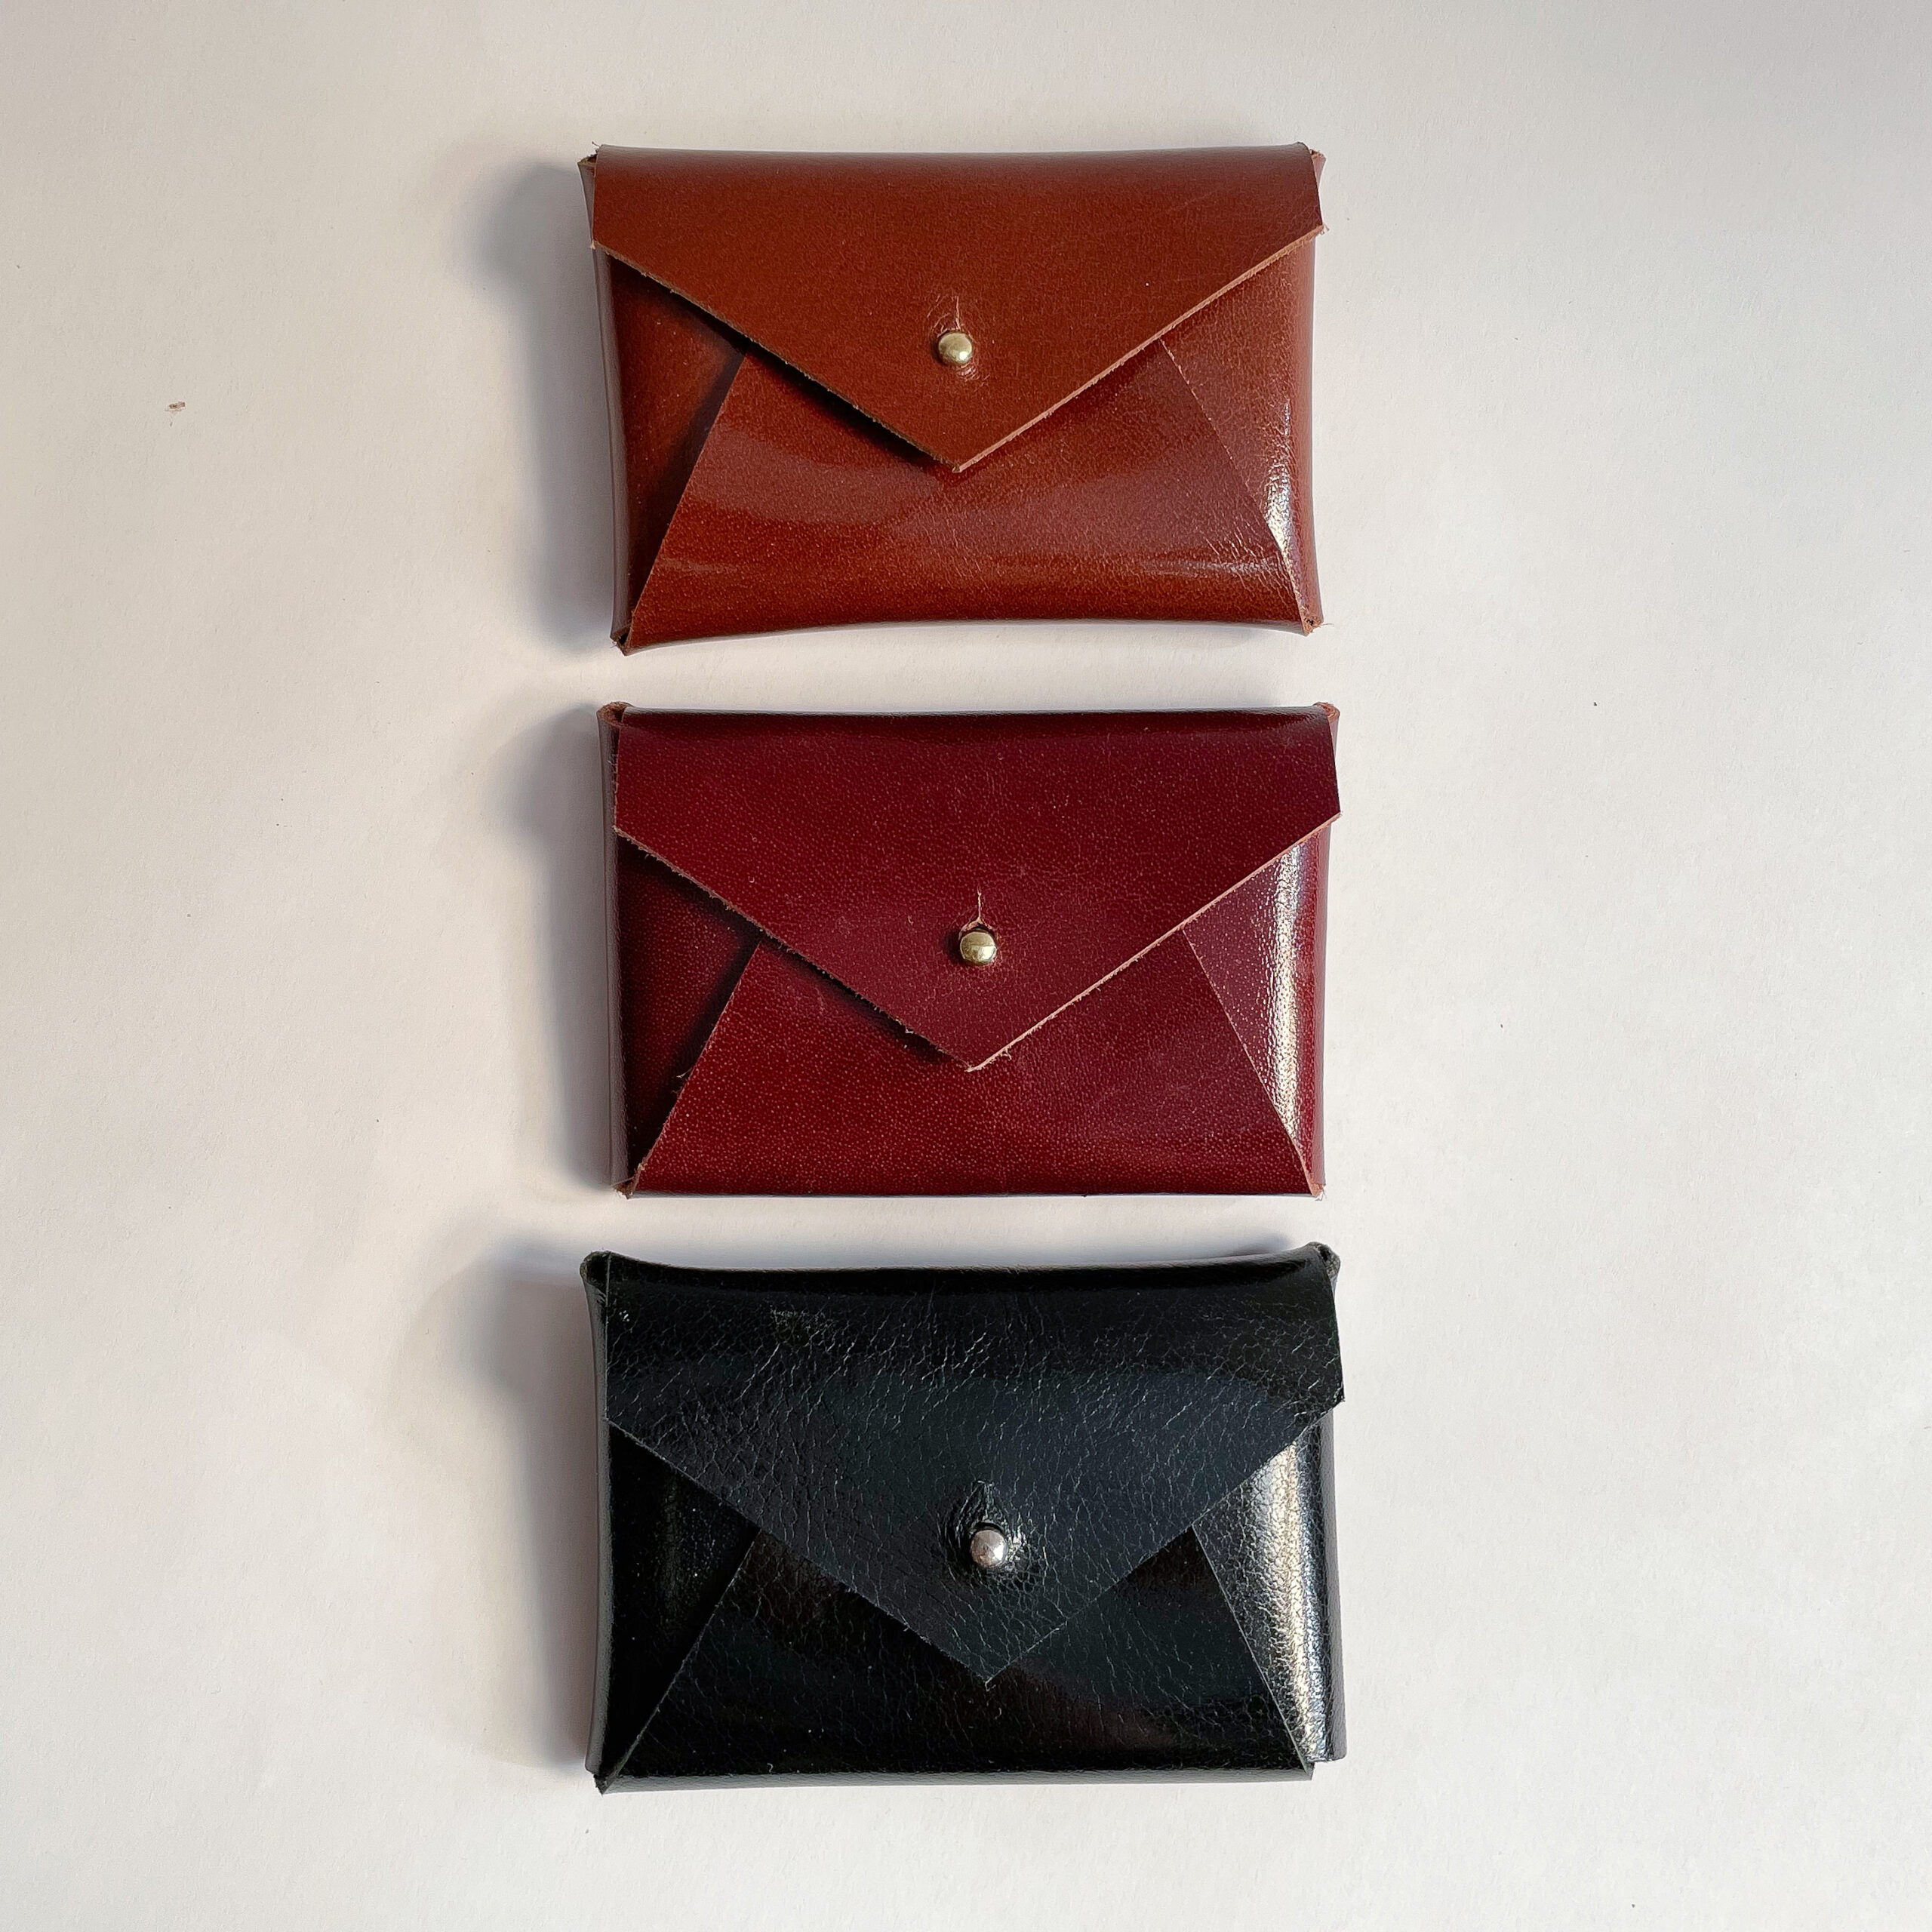 Three leather card cases laying on their back